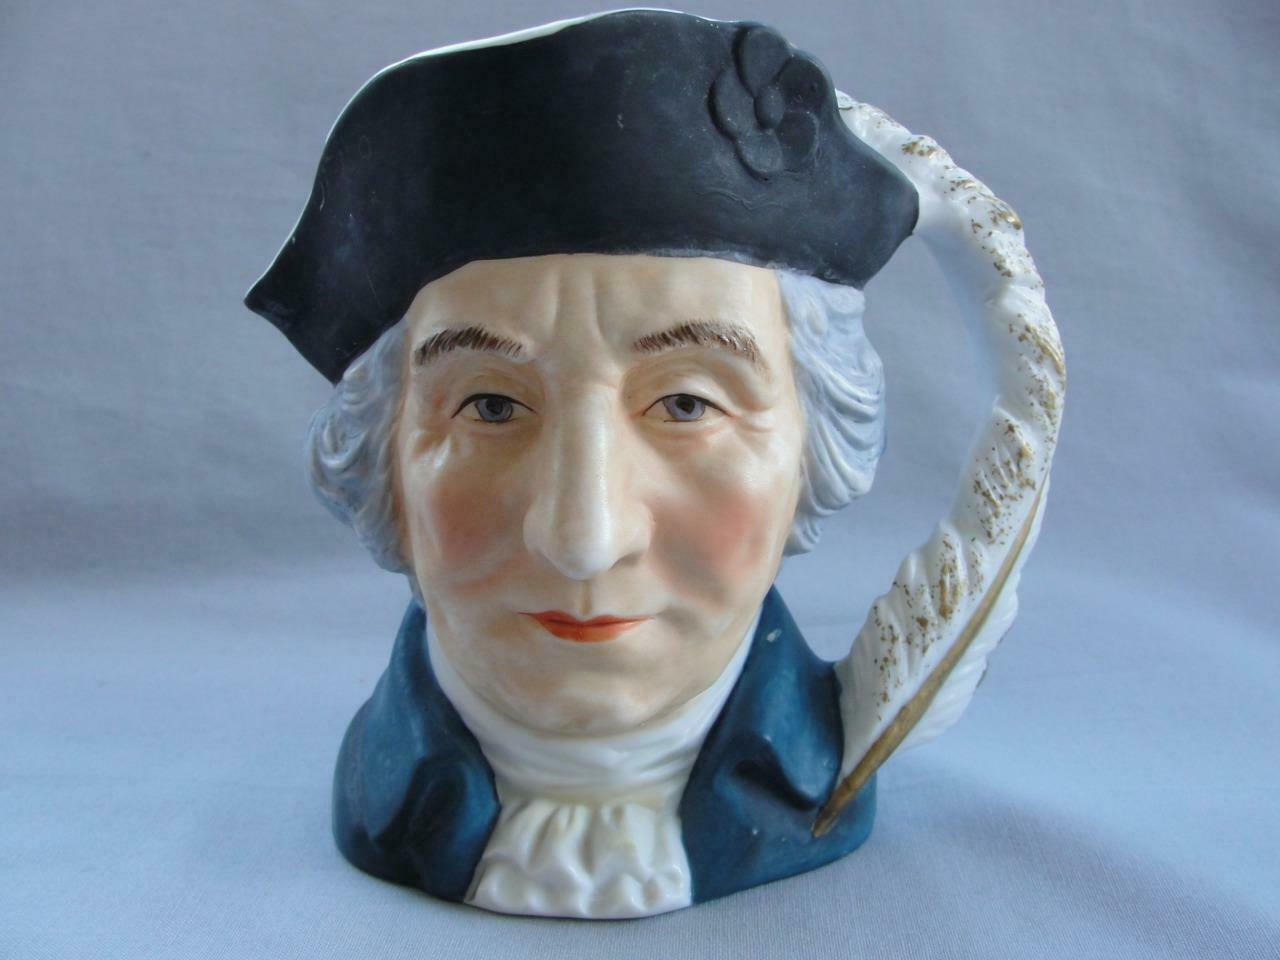 Primary image for Vintage Lefton China George Washington Character Creamer or Pitcher KW2326